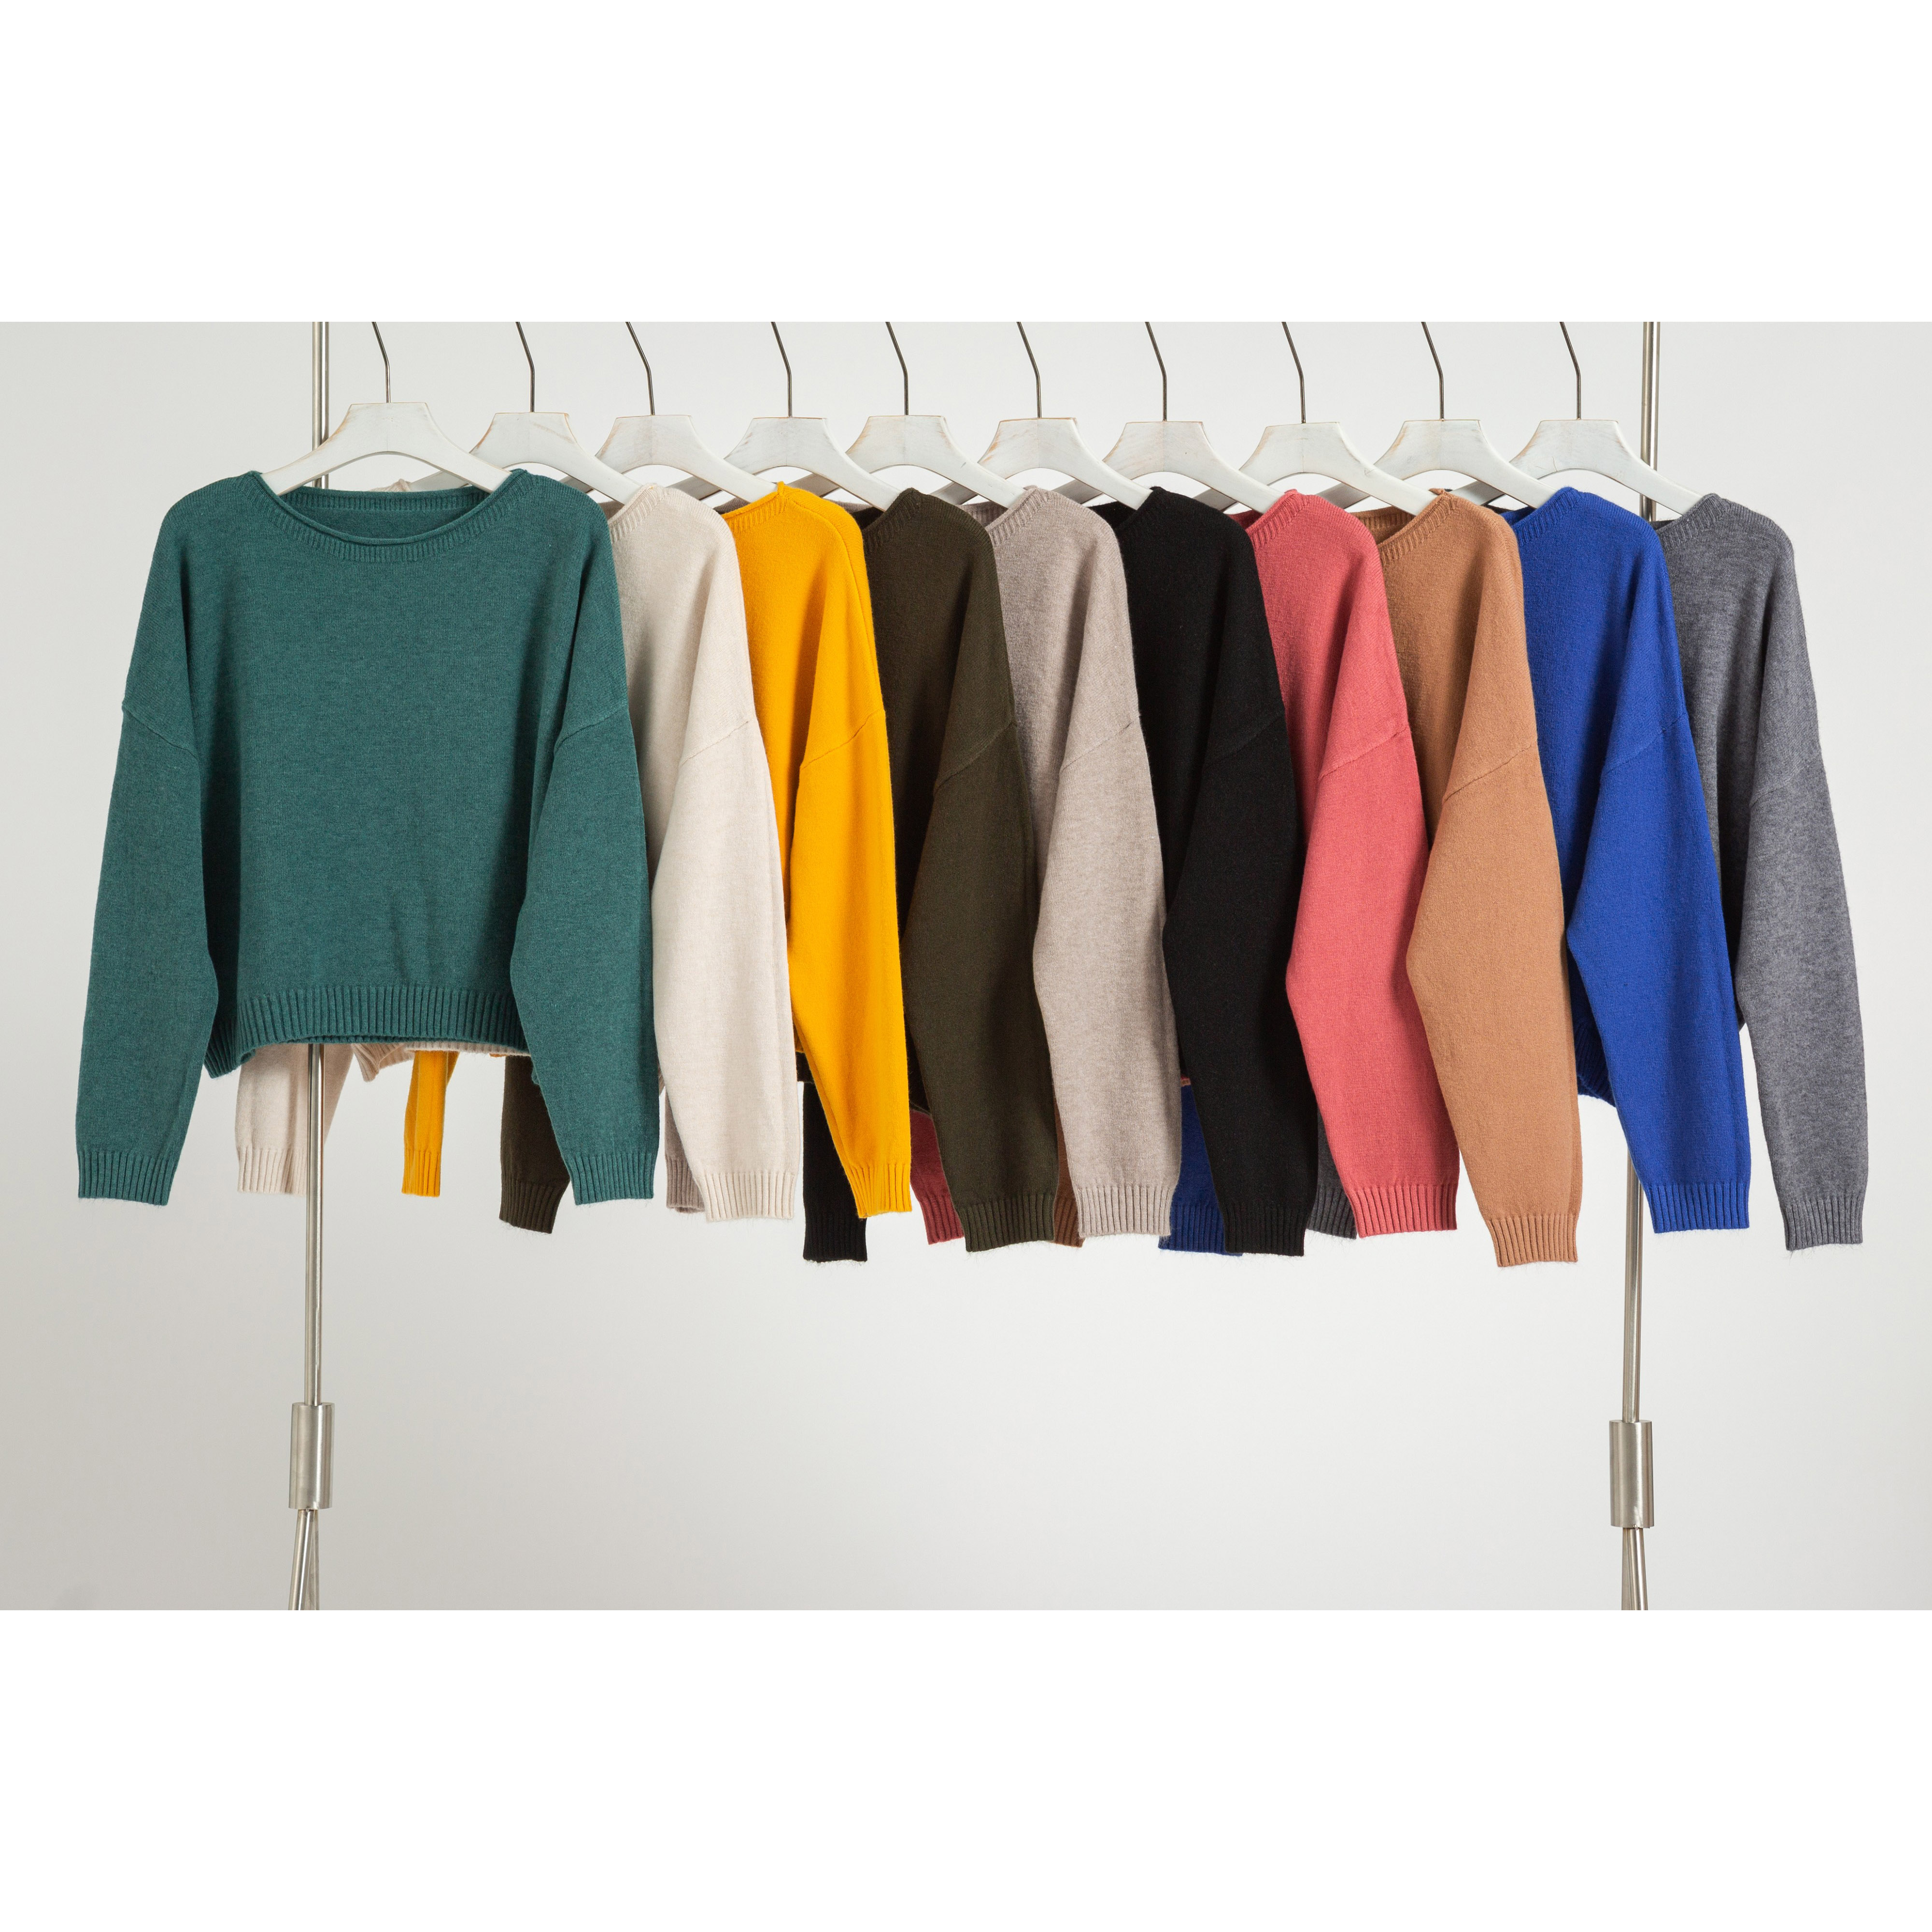 Basic Knit Crop Top Pure Color Contracted Style Round Neck Long Sleeve Pullover Sweater for Women(10 colors)